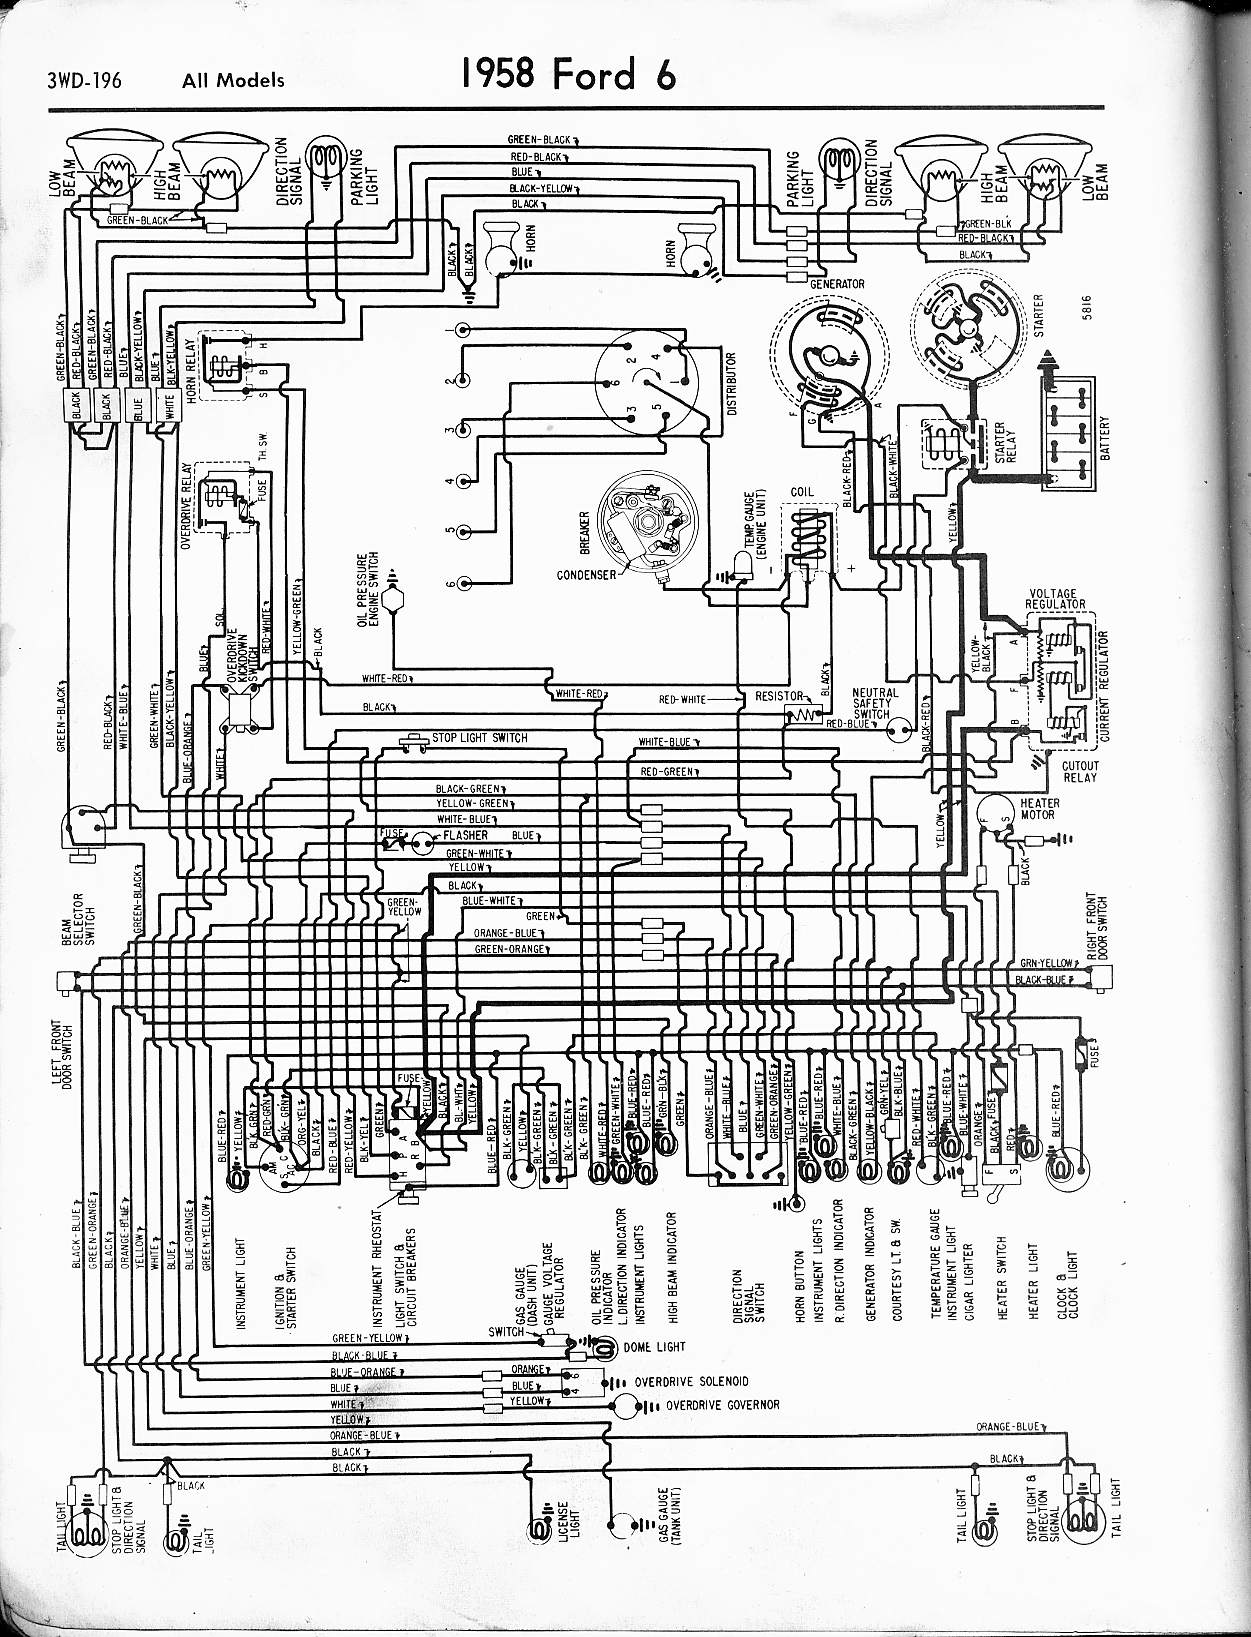 1960 Ford Wiring Diagram - Wiring Diagram Schematics